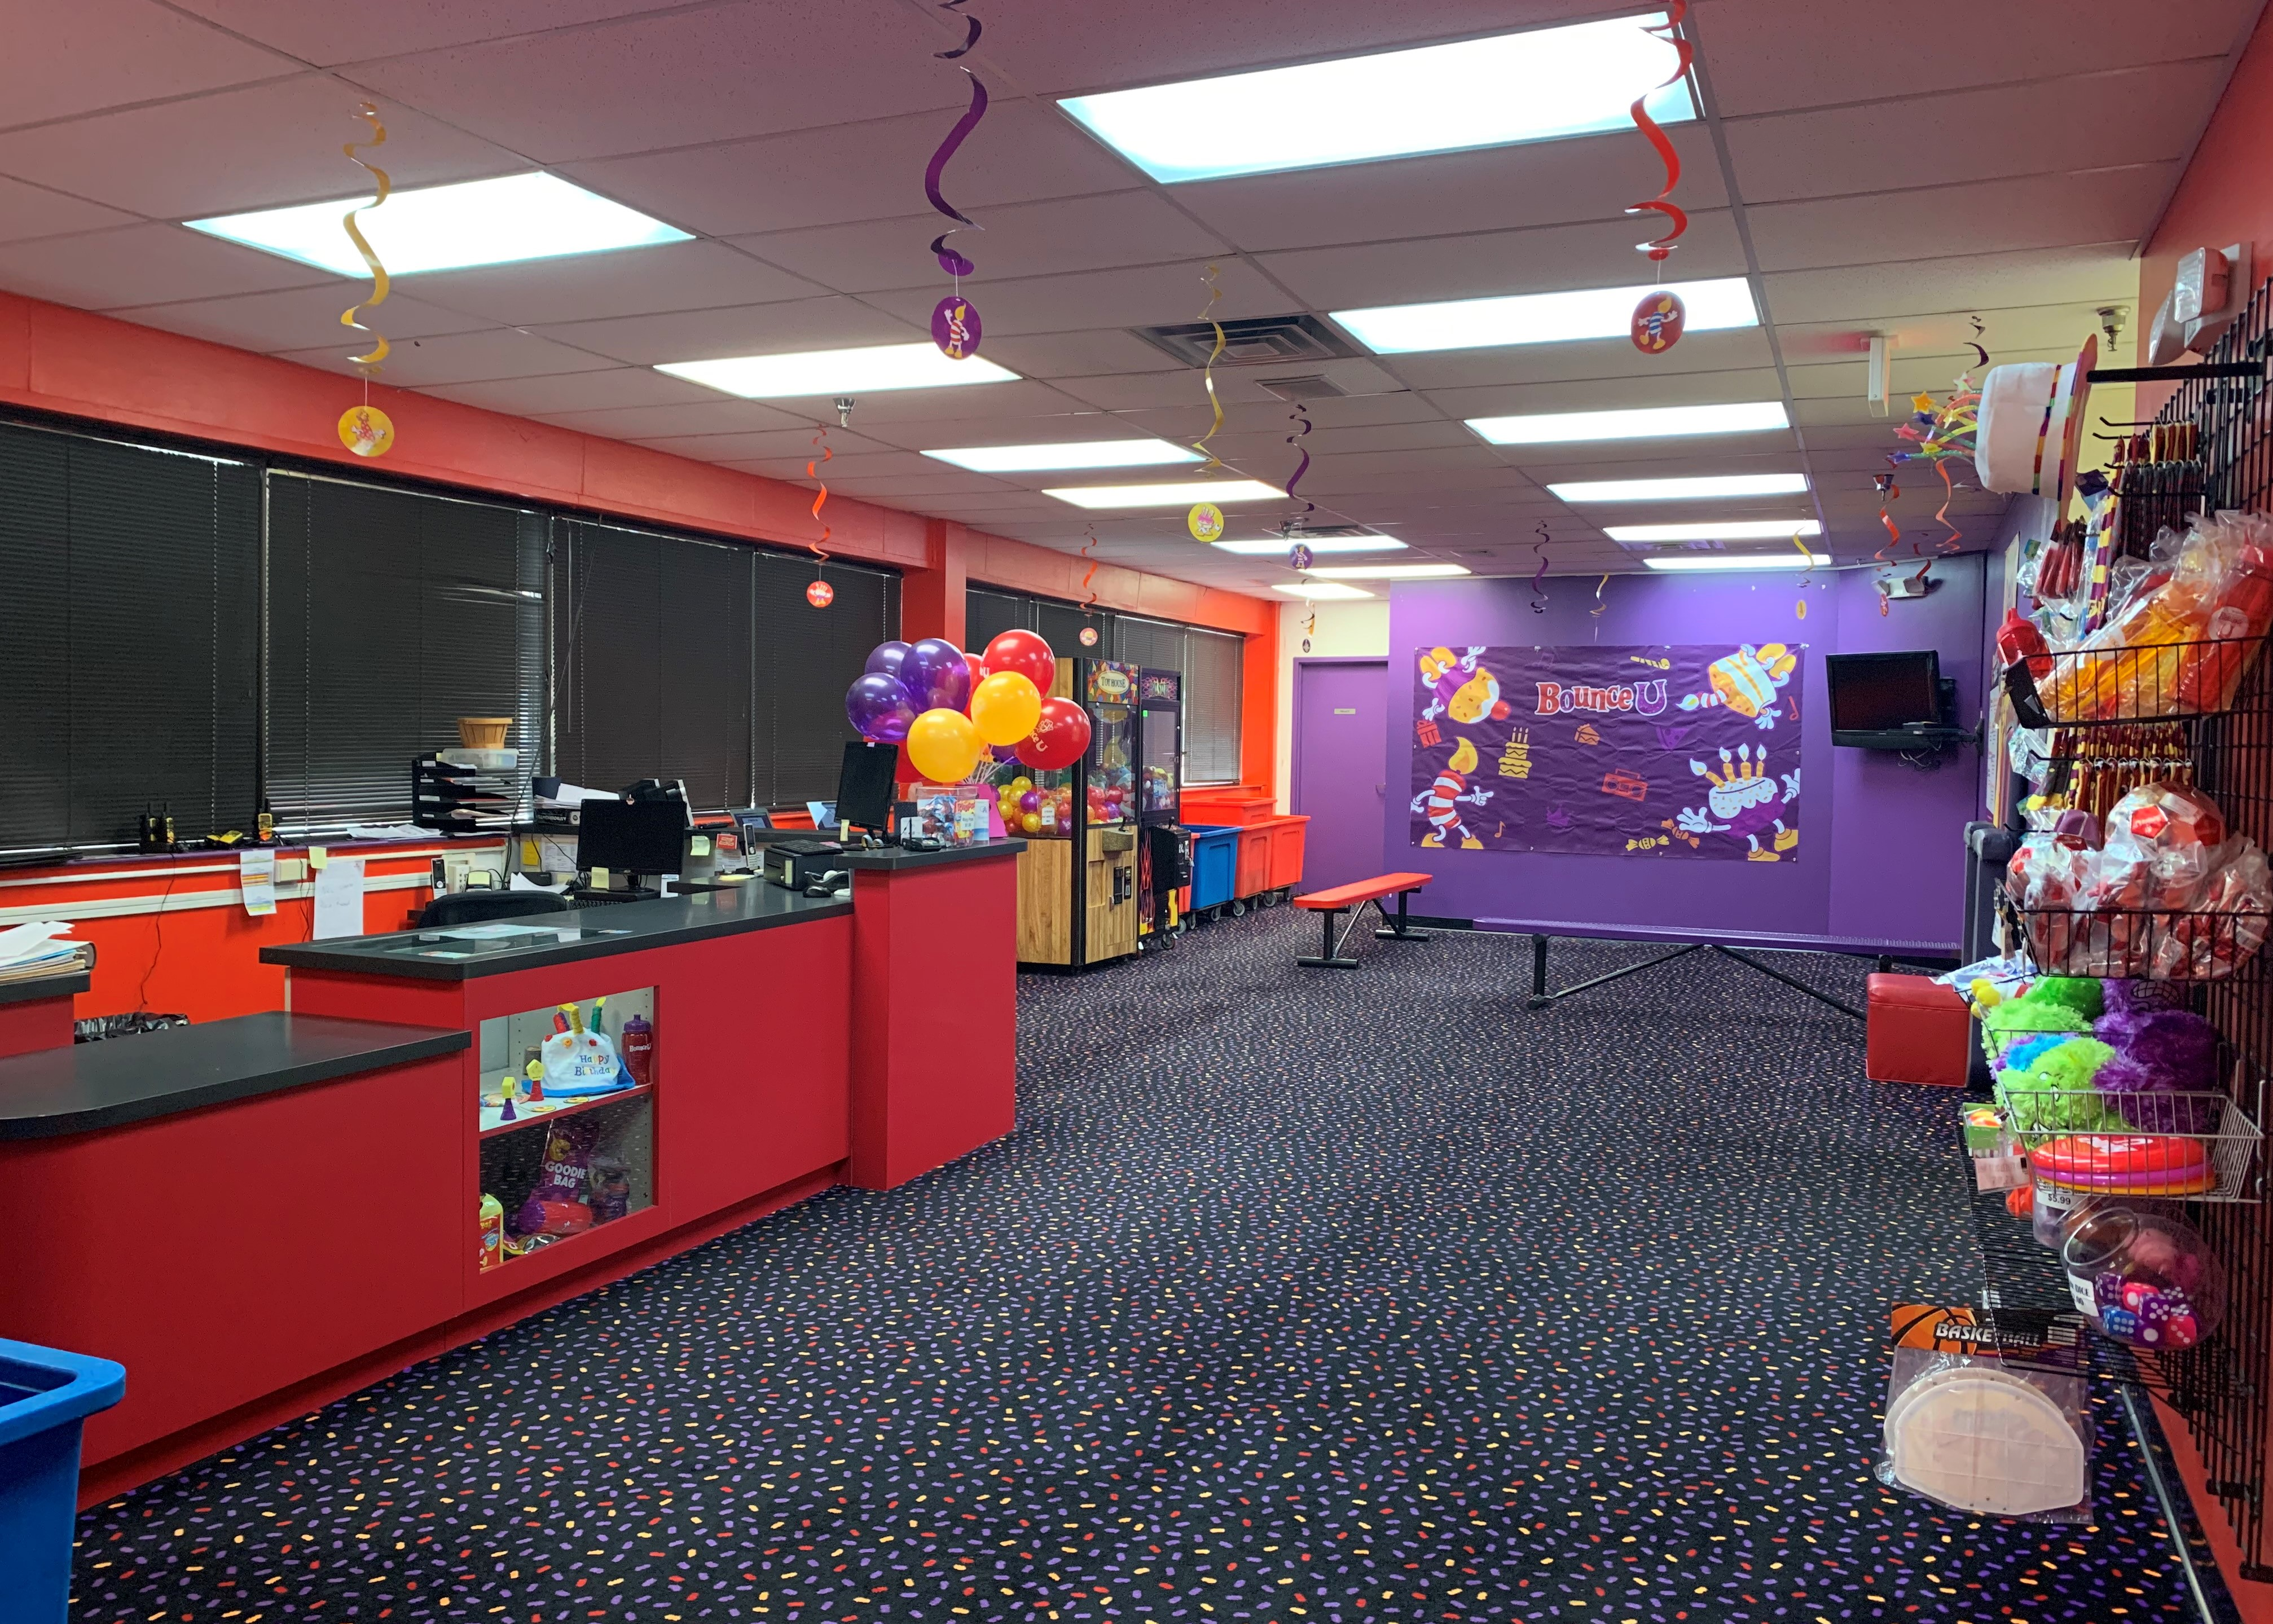 BounceU the lobby of a kid's birthday party place.